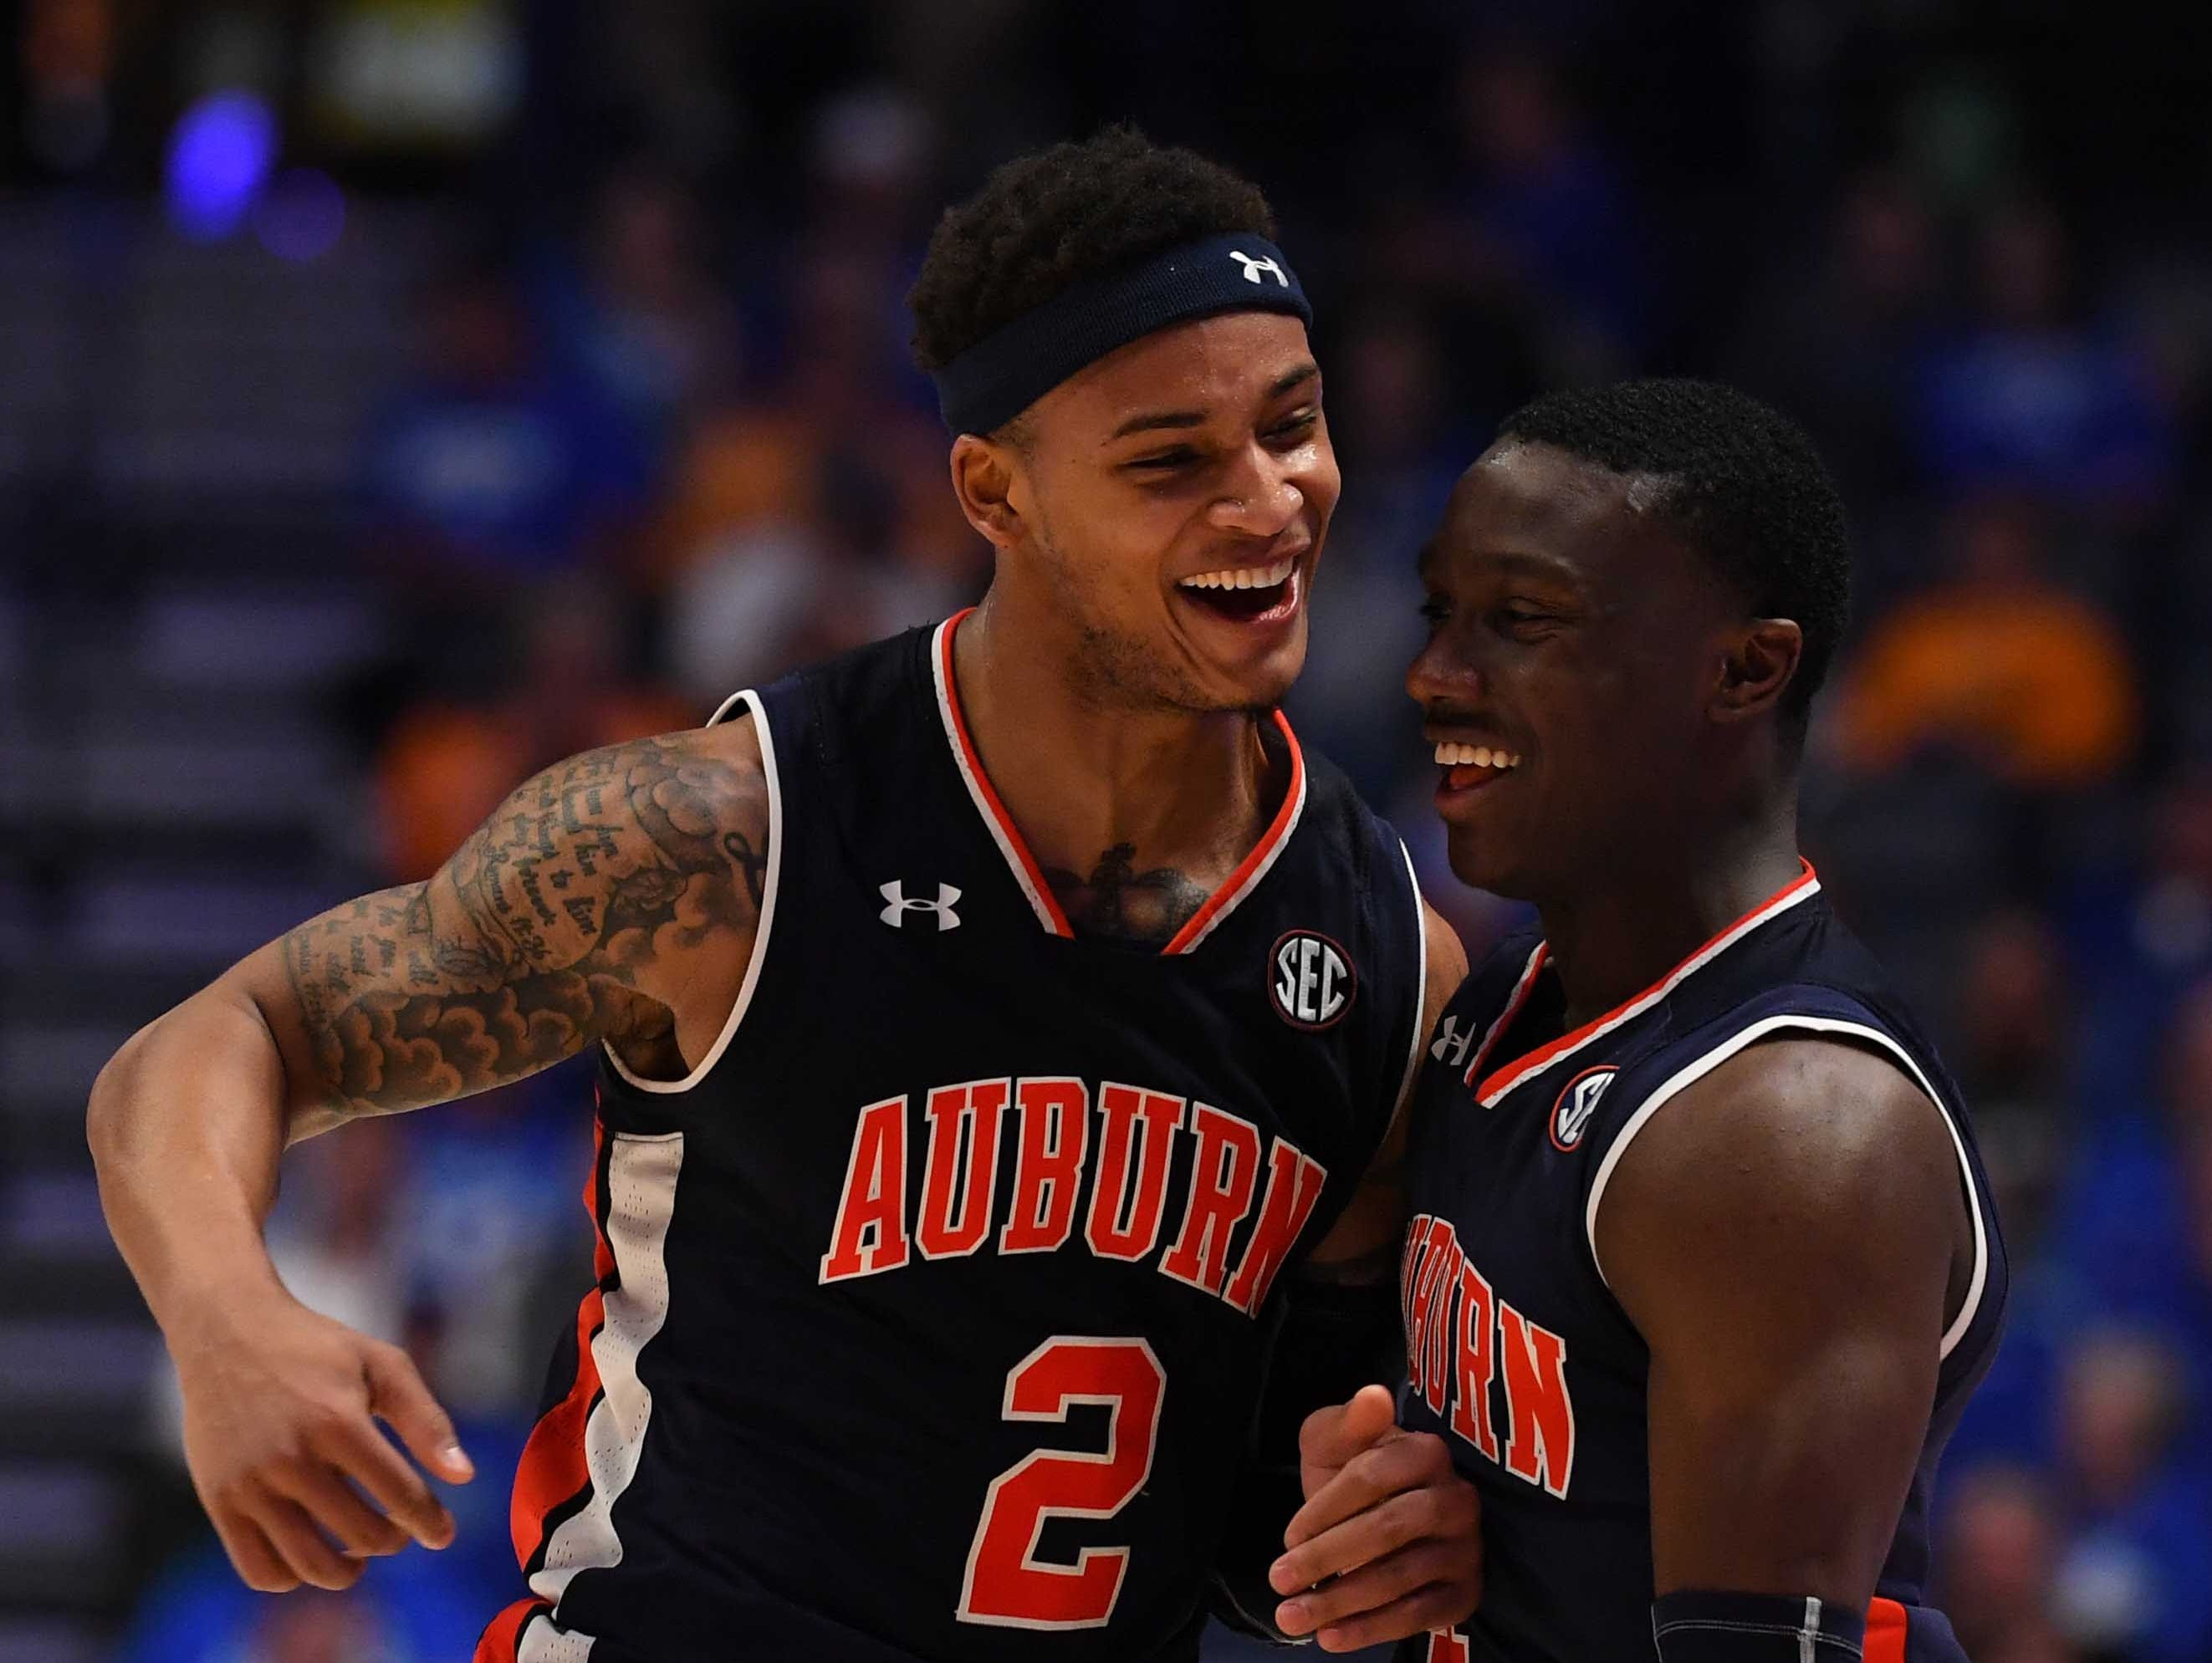 Mar 15, 2019; Nashville, TN, USA; Auburn Tigers guard Jared Harper (1) and Auburn Tigers guard Bryce Brown (2) celebrate after a basket against the South Carolina Gamecocks during the first half of the SEC conference tournament at Bridgestone Arena. Mandatory Credit: Christopher Hanewinckel-USA TODAY Sports